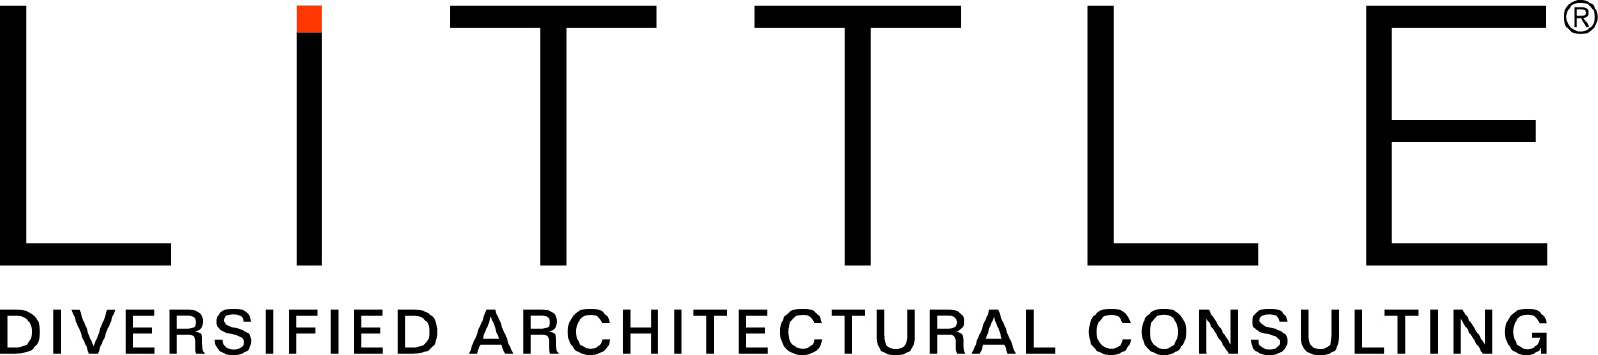 Little Diversified Architectural Consulting: Business Exchange Exhibitors: 2018 ACE Summit